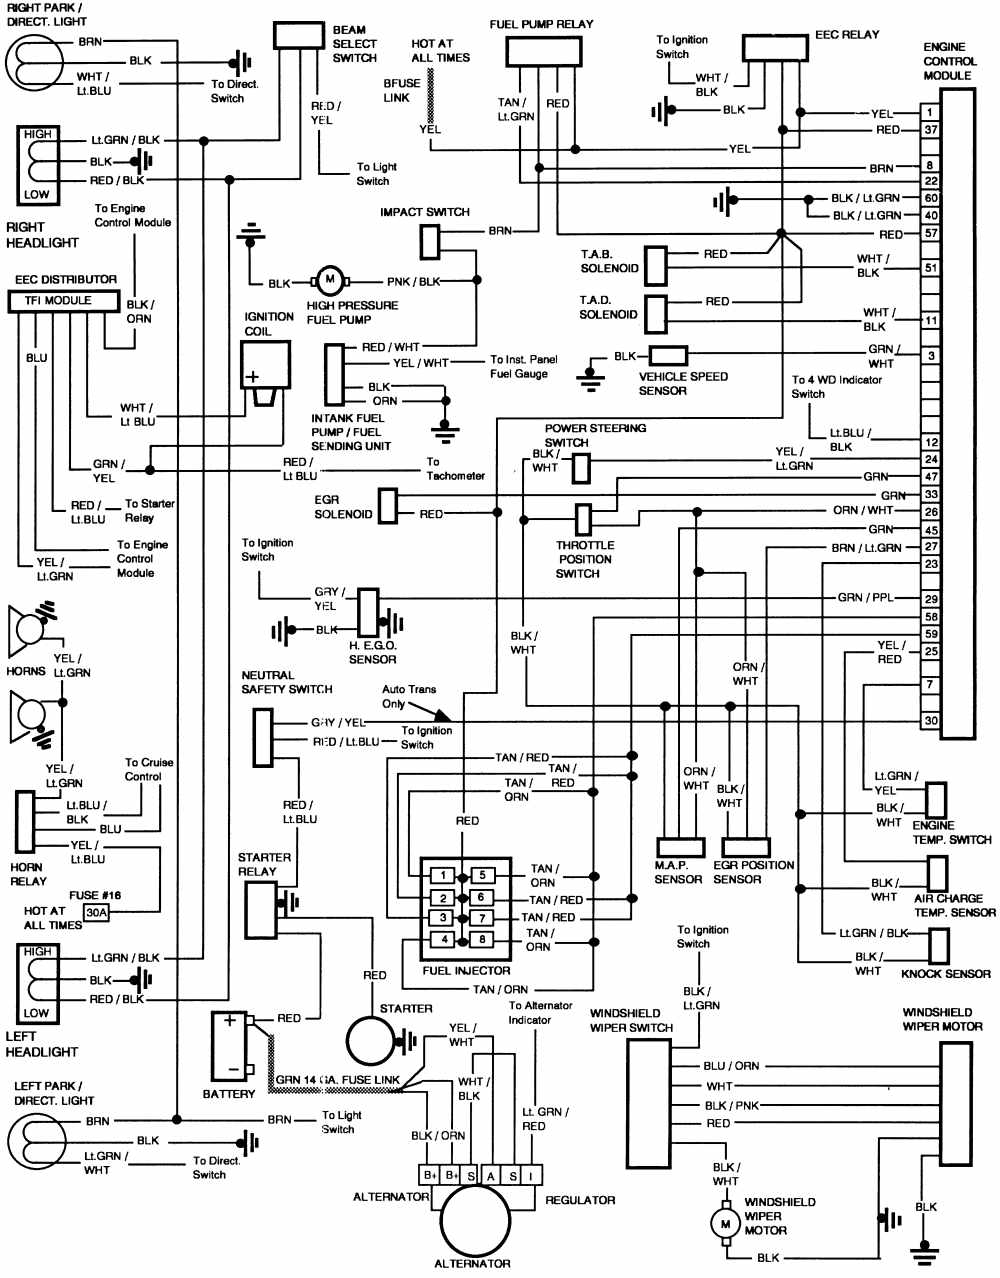 2006 Ford F250 Wiring Diagram from 4.bp.blogspot.com